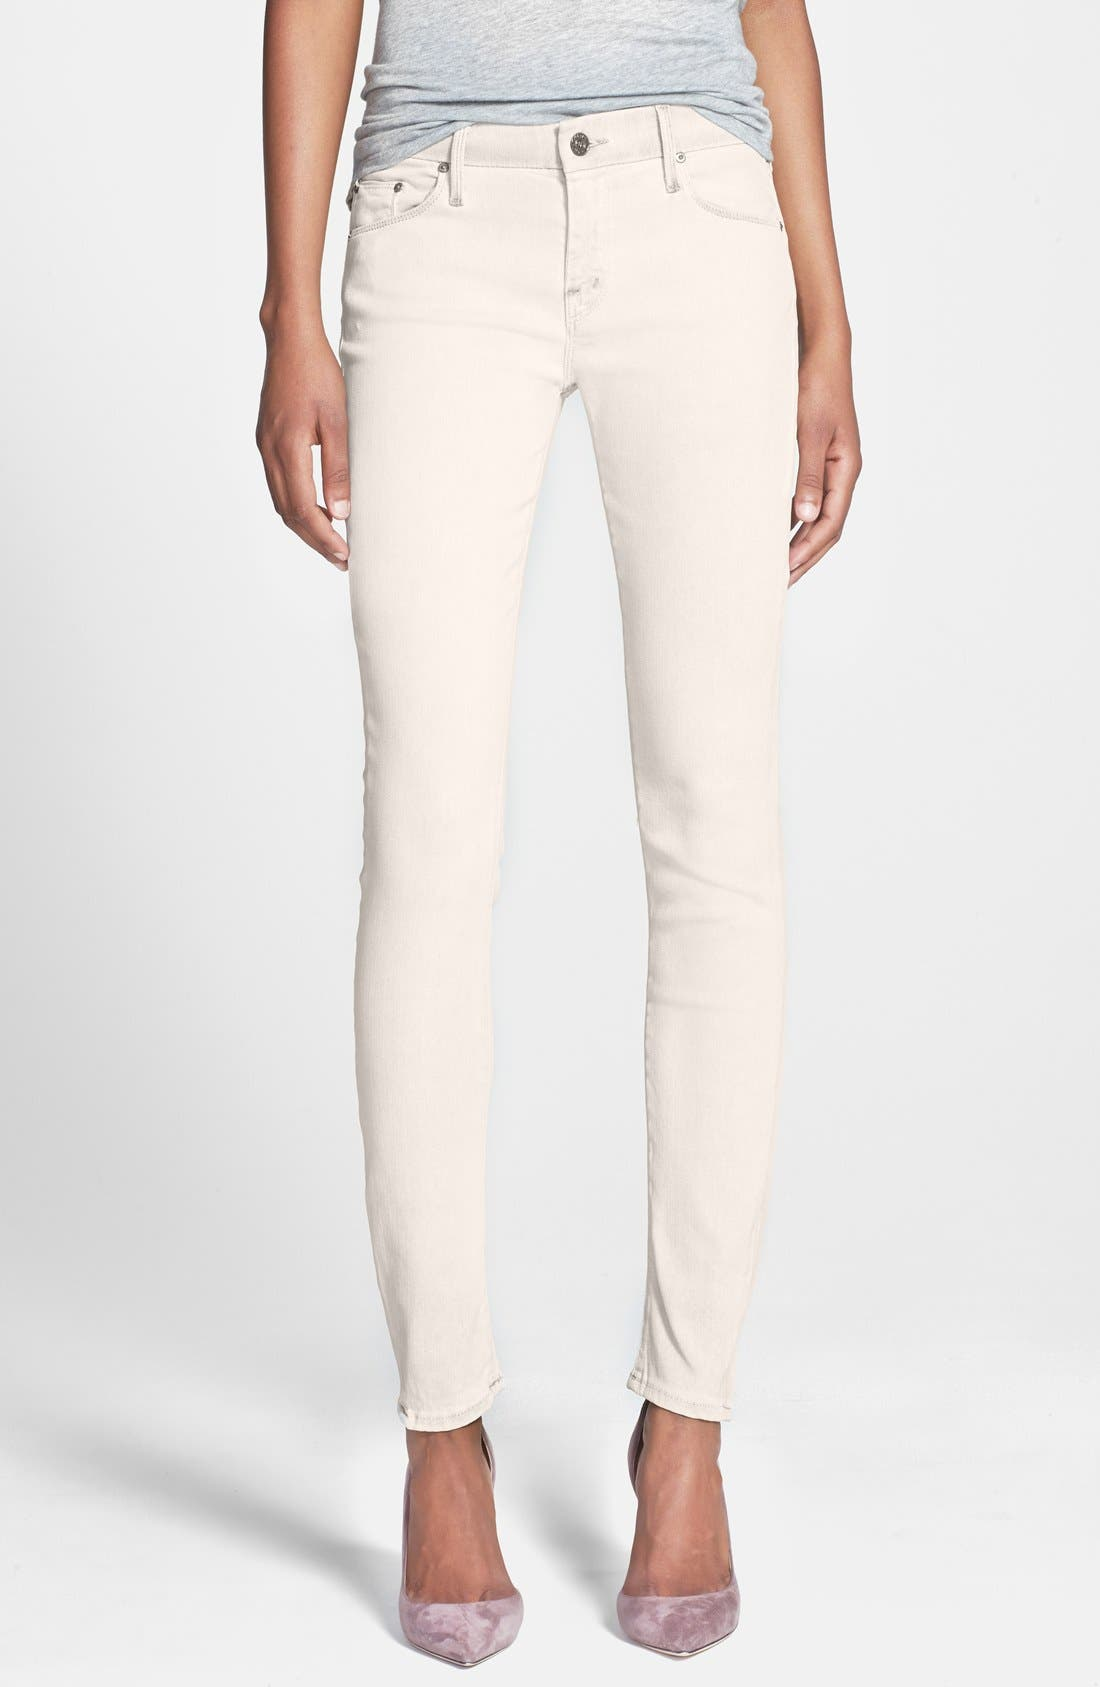 Alternate Image 1 Selected - MOTHER 'The Looker' Skinny Stretch Jeans (Driftwood)